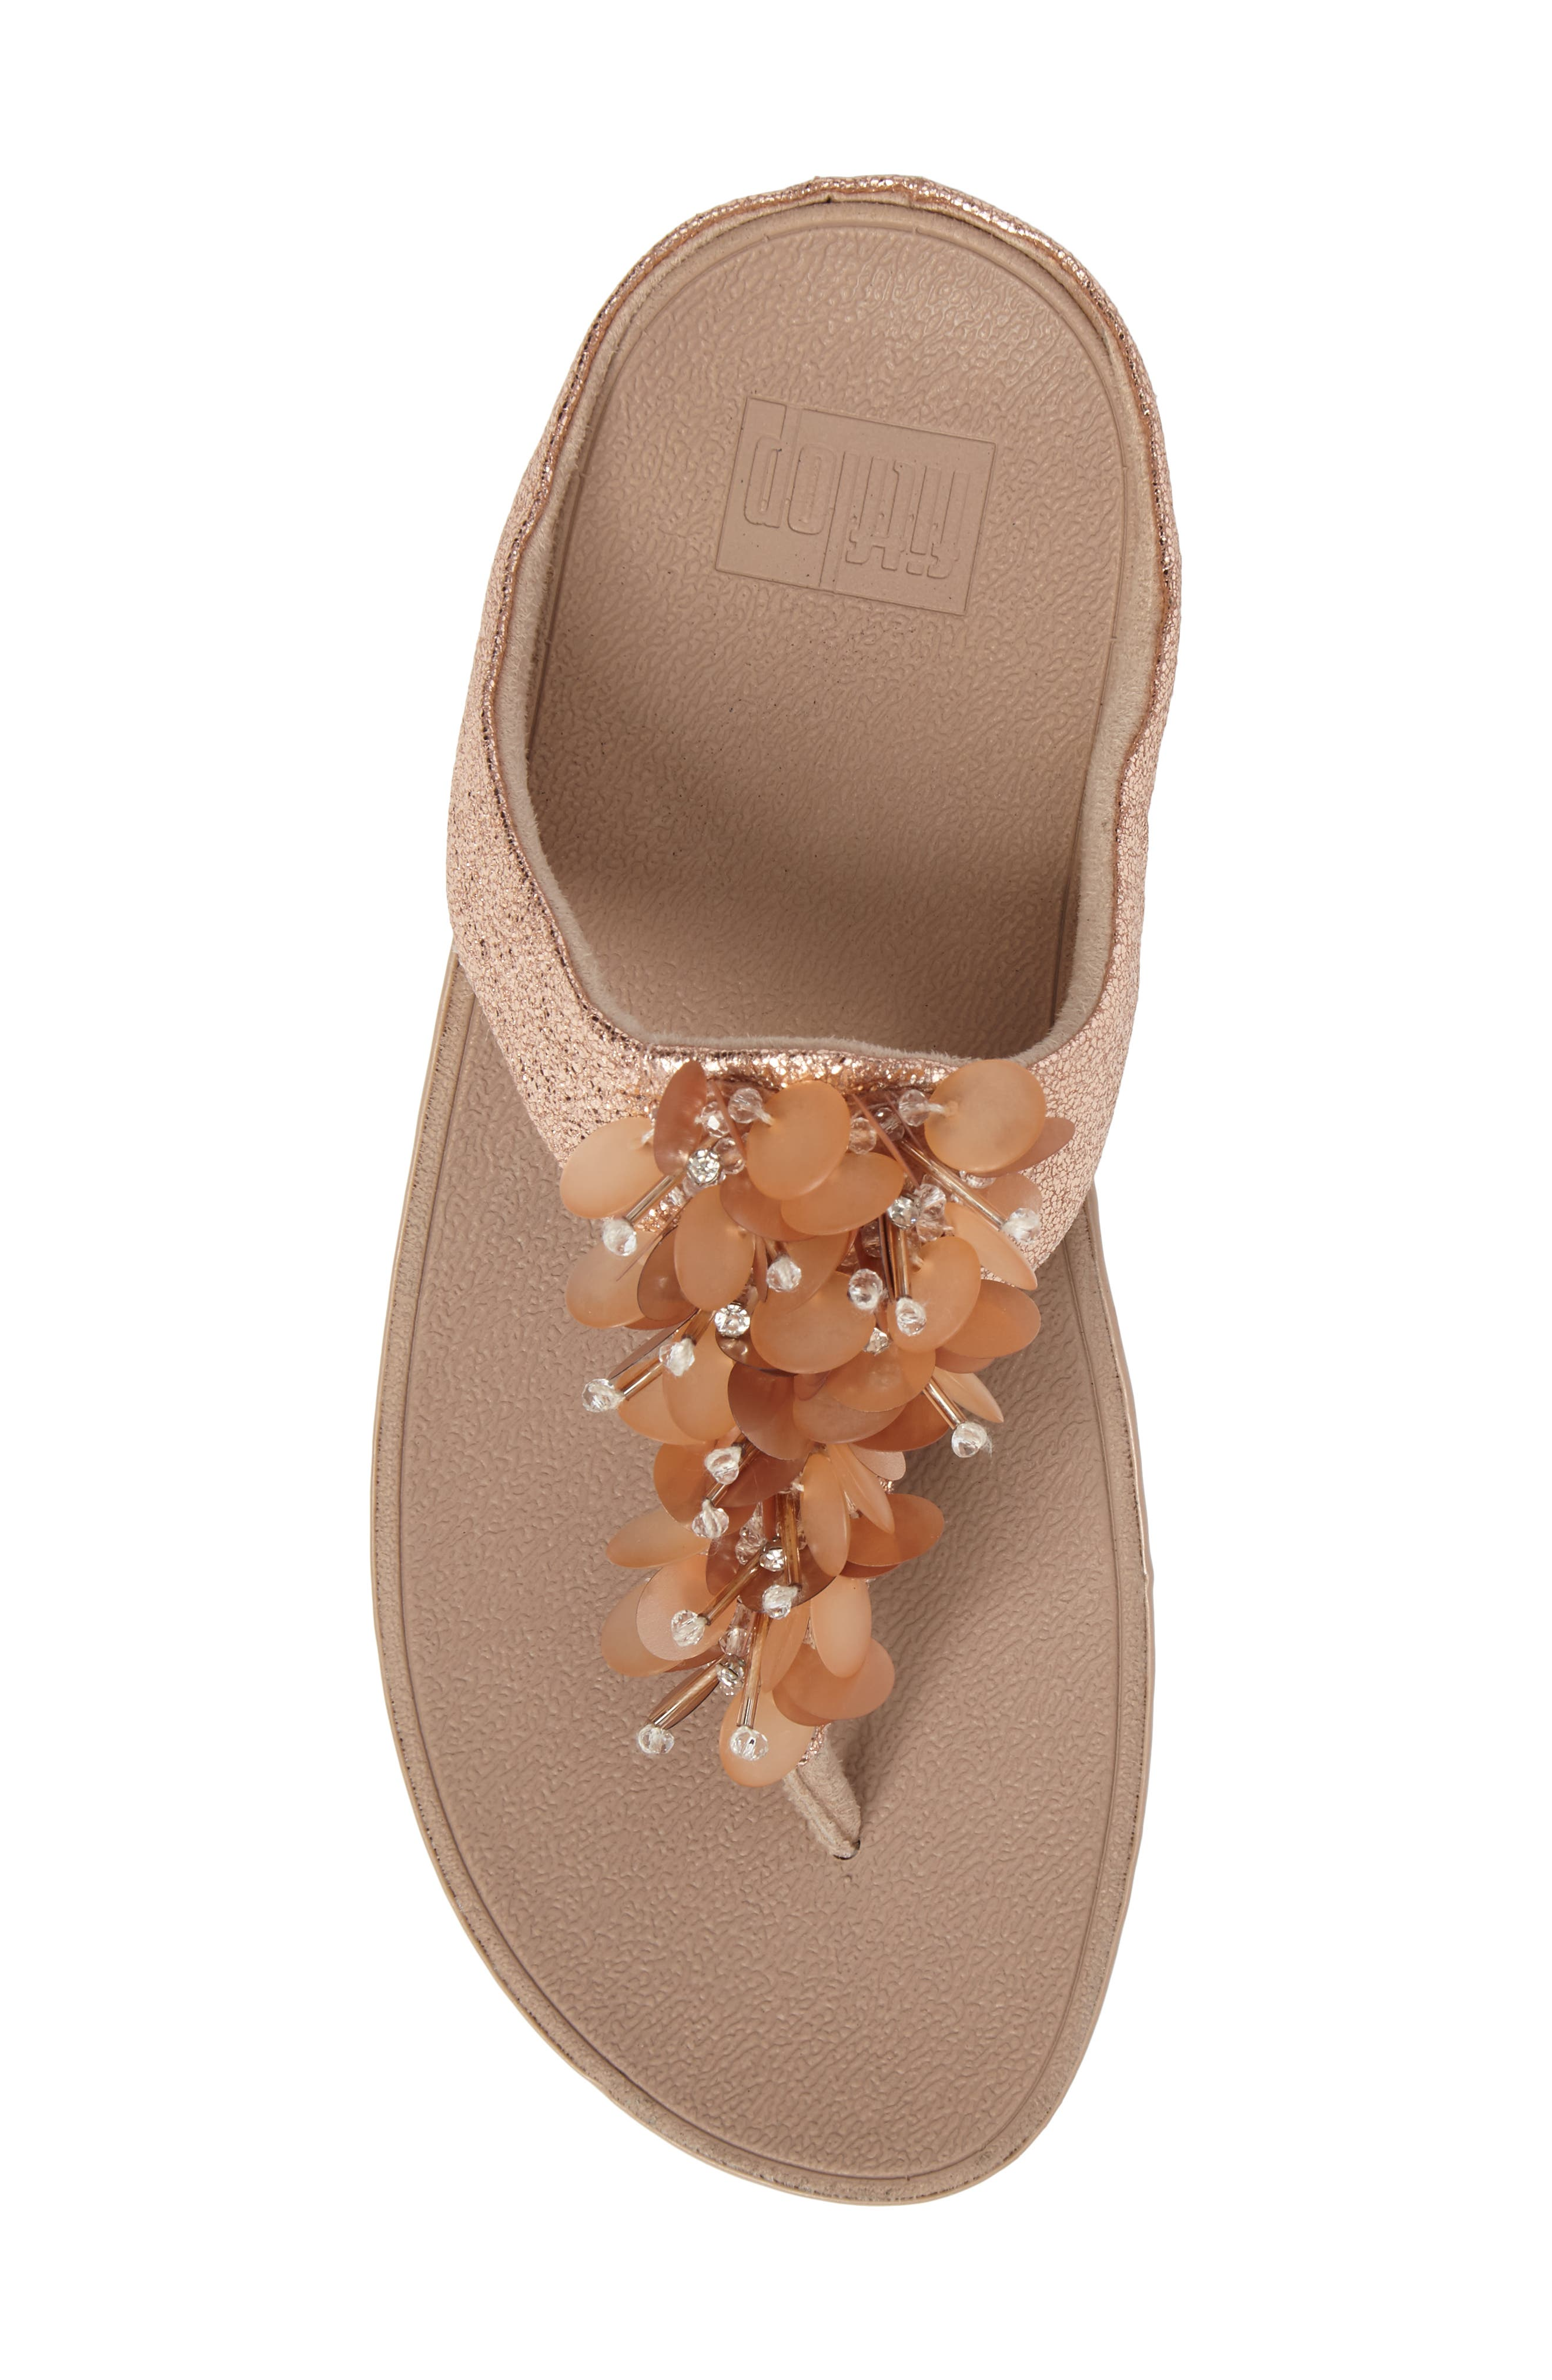 Boogaloo Sandal,                             Alternate thumbnail 5, color,                             Rose Gold Leather